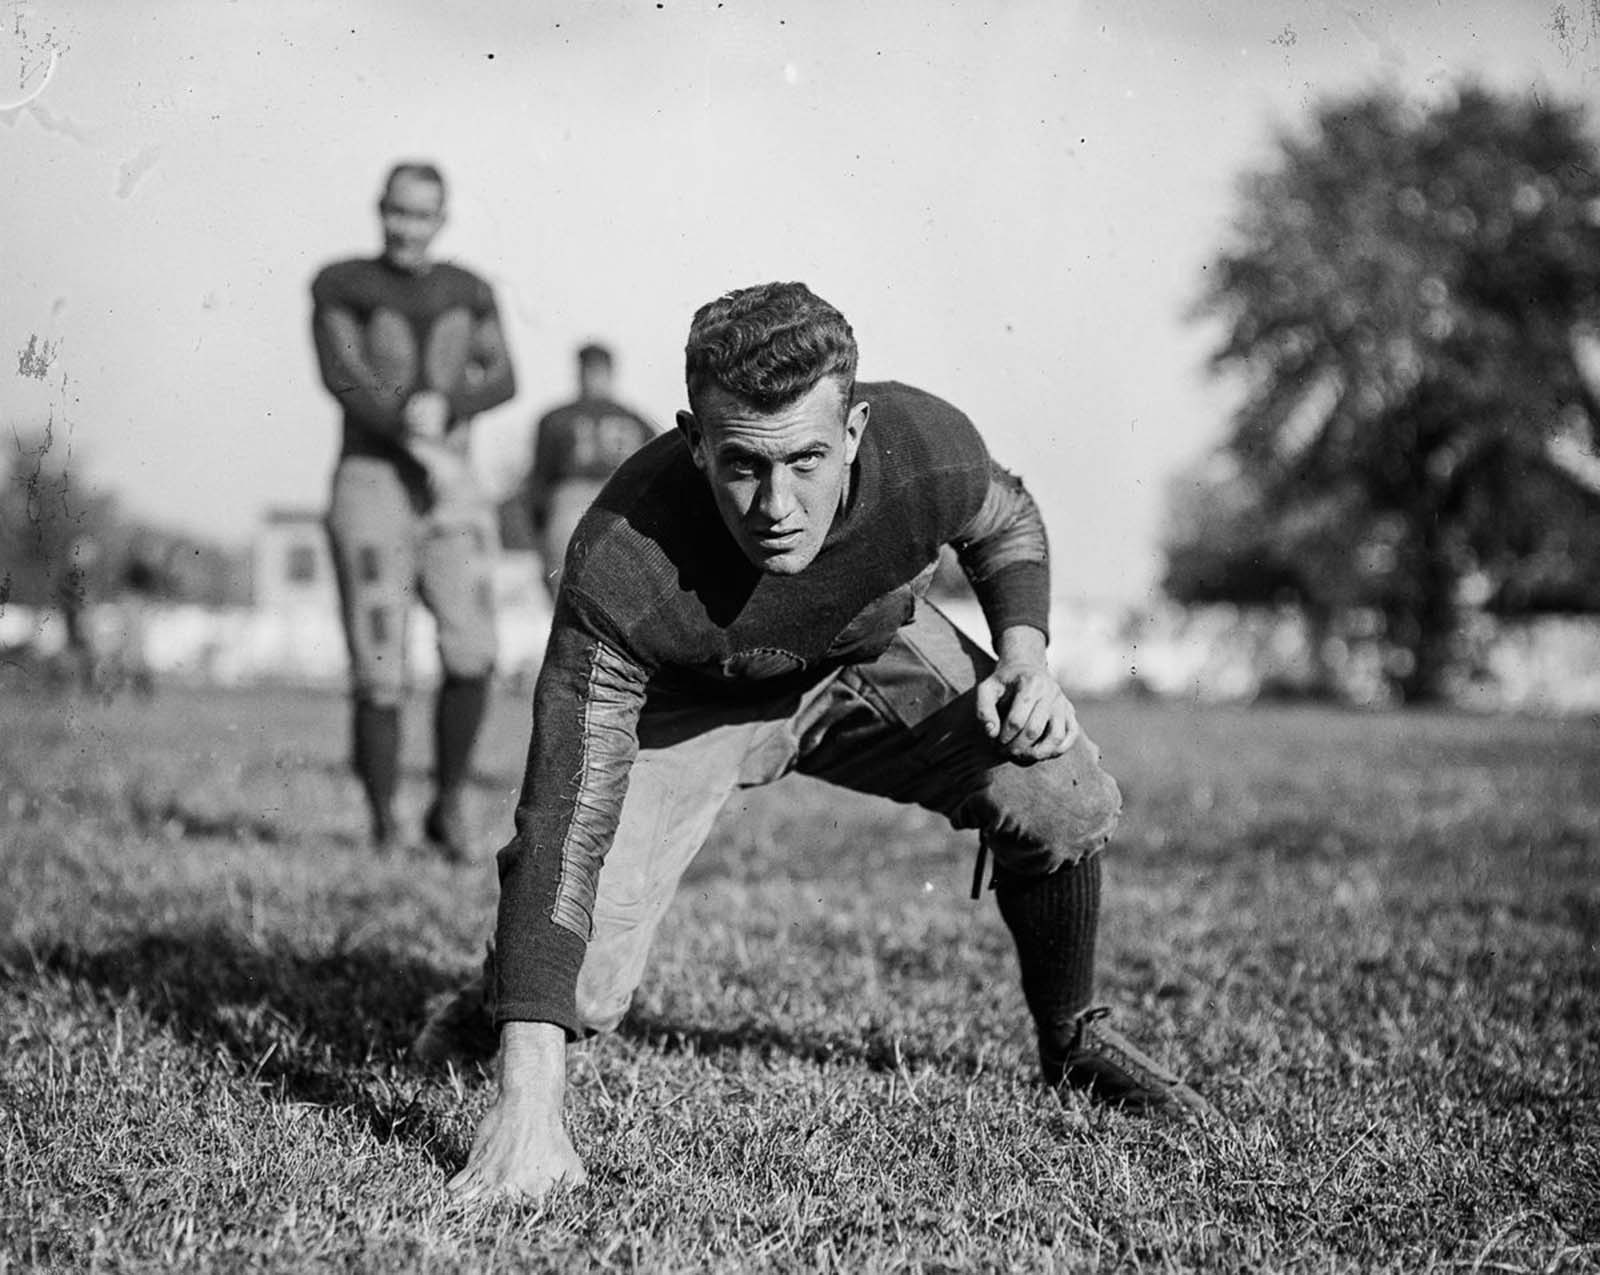 American football resulted from several major divergences from association football and rugby football, most notably the rule changes instituted by Walter Camp, a Yale University and Hopkins School graduate who is considered to be the